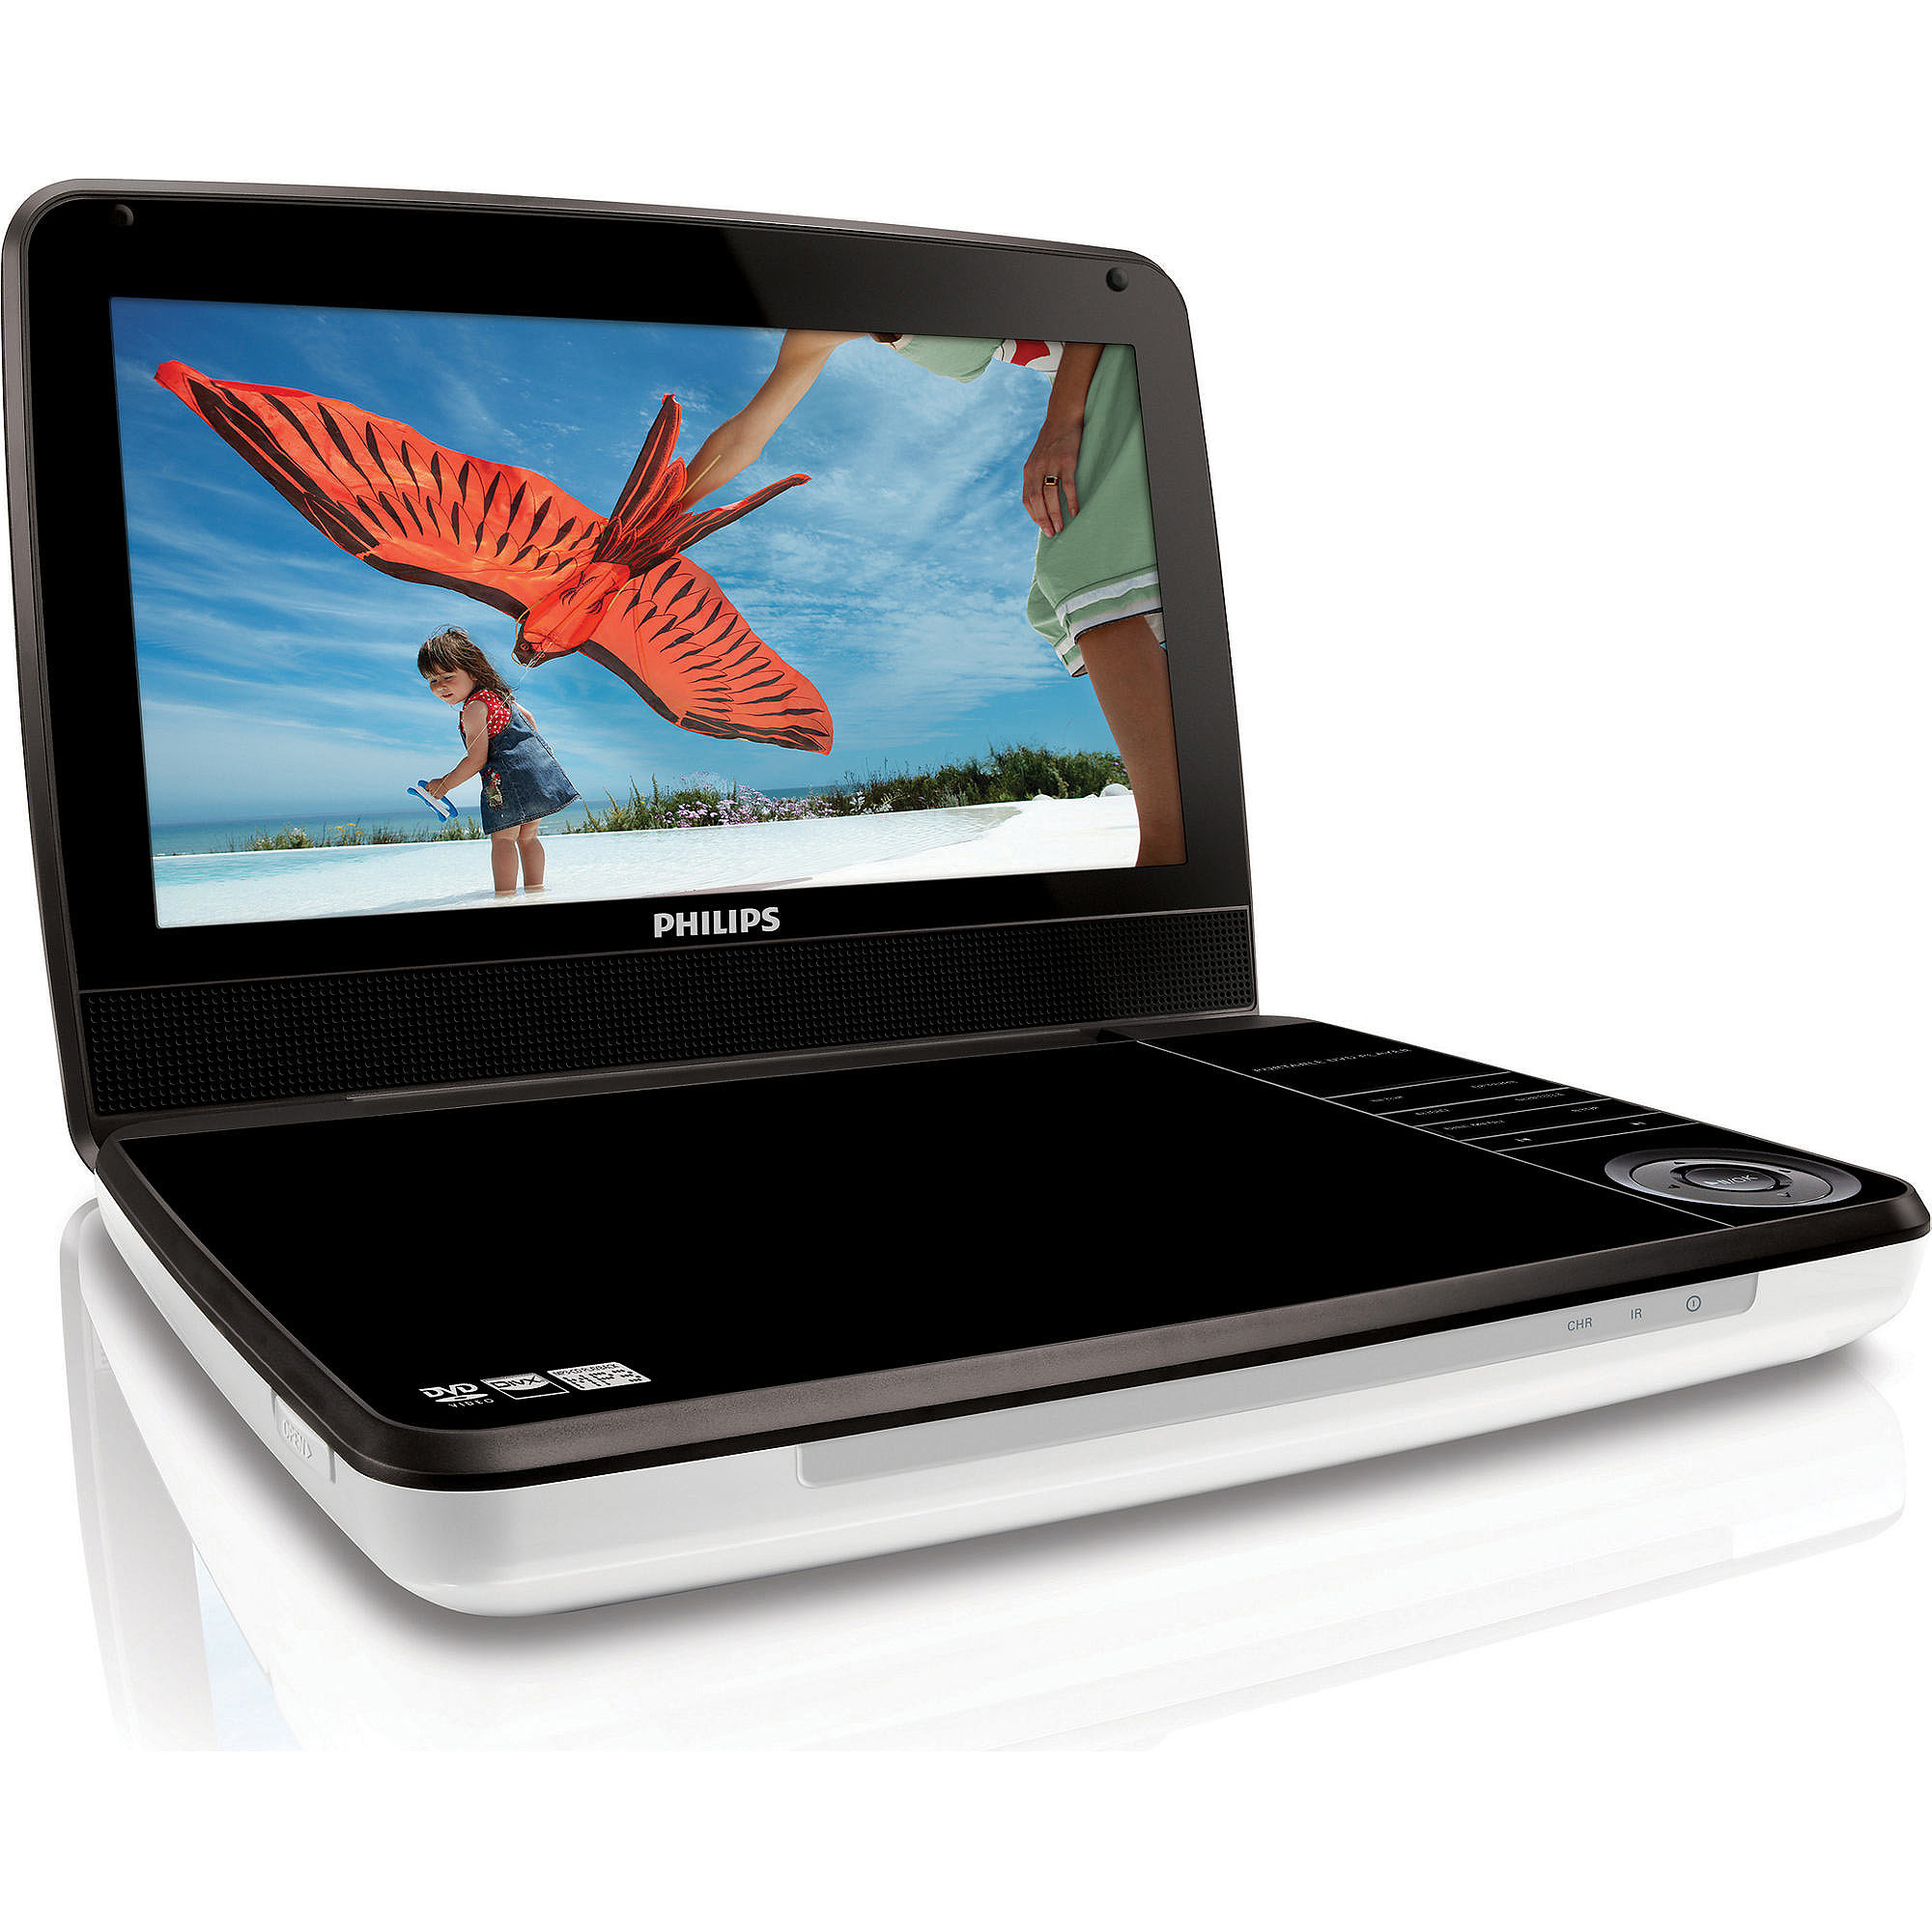 "Philips PD9030/37 9"" LCD Portable DVD Player"